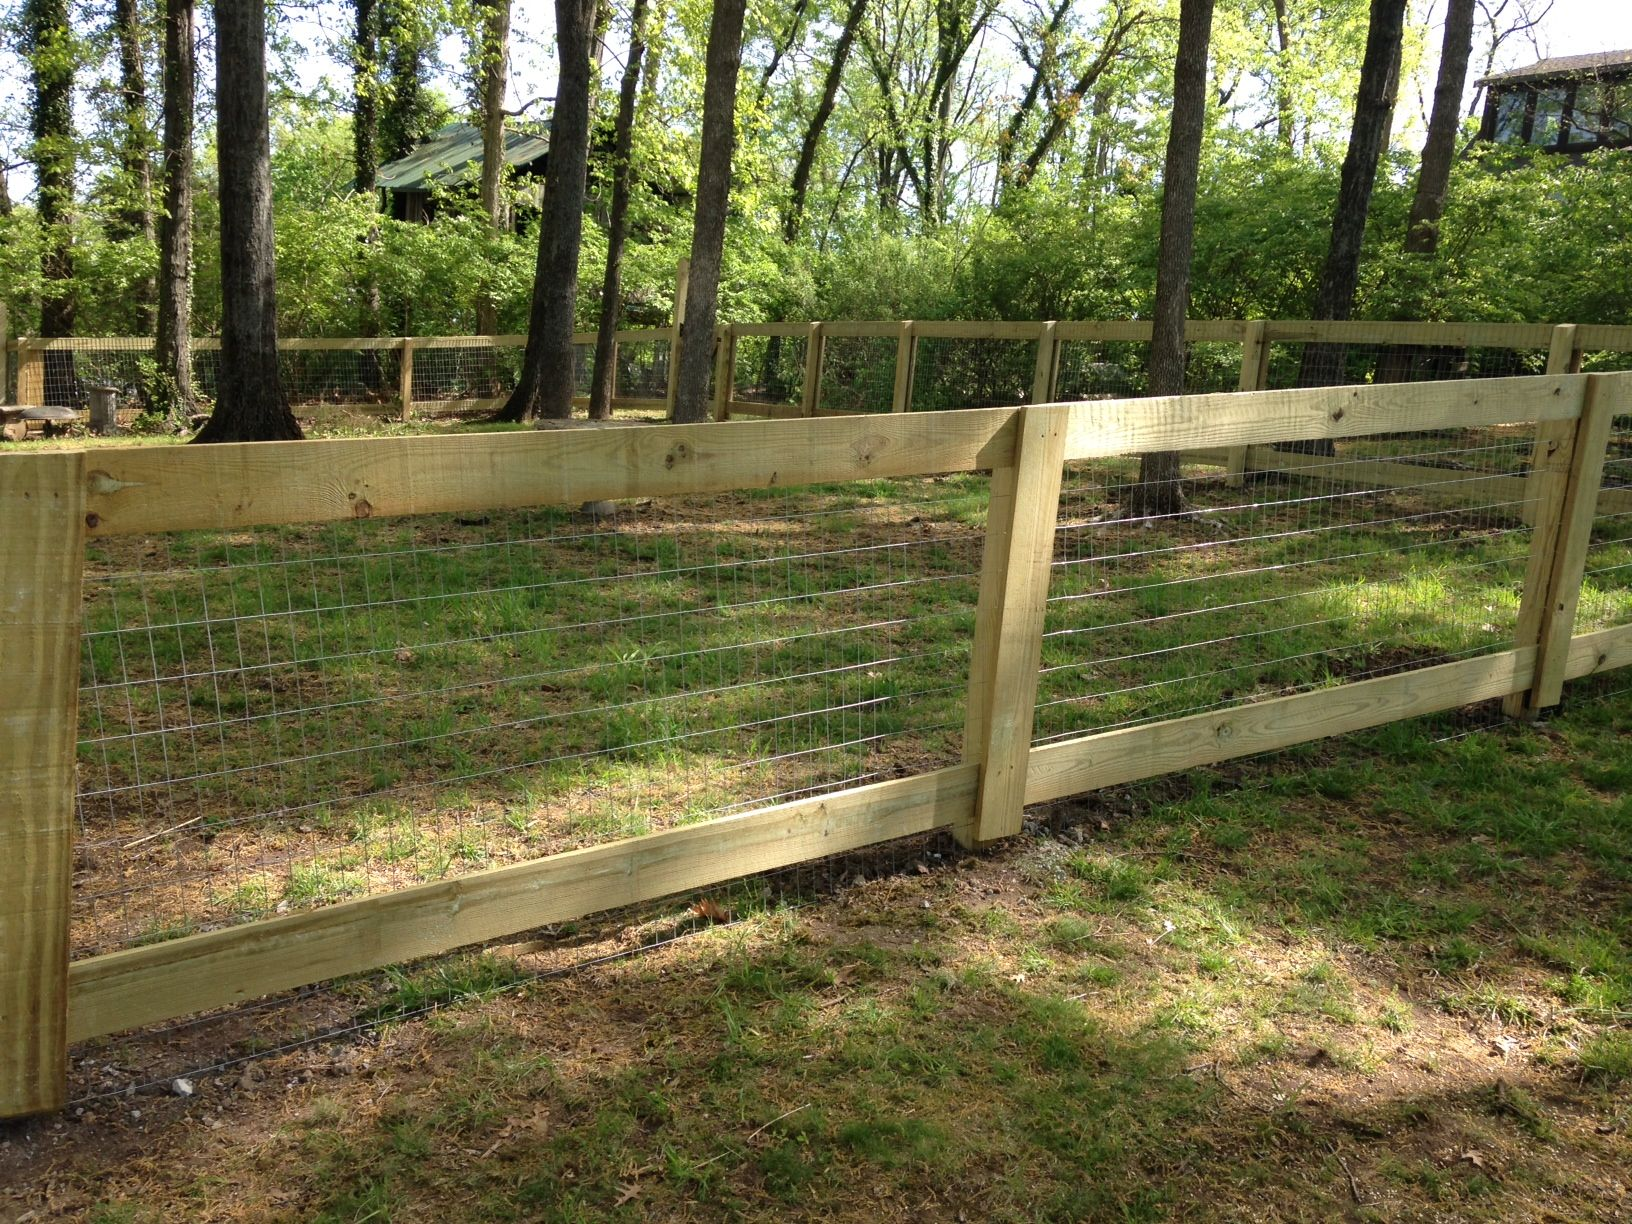 wood framed wire fence